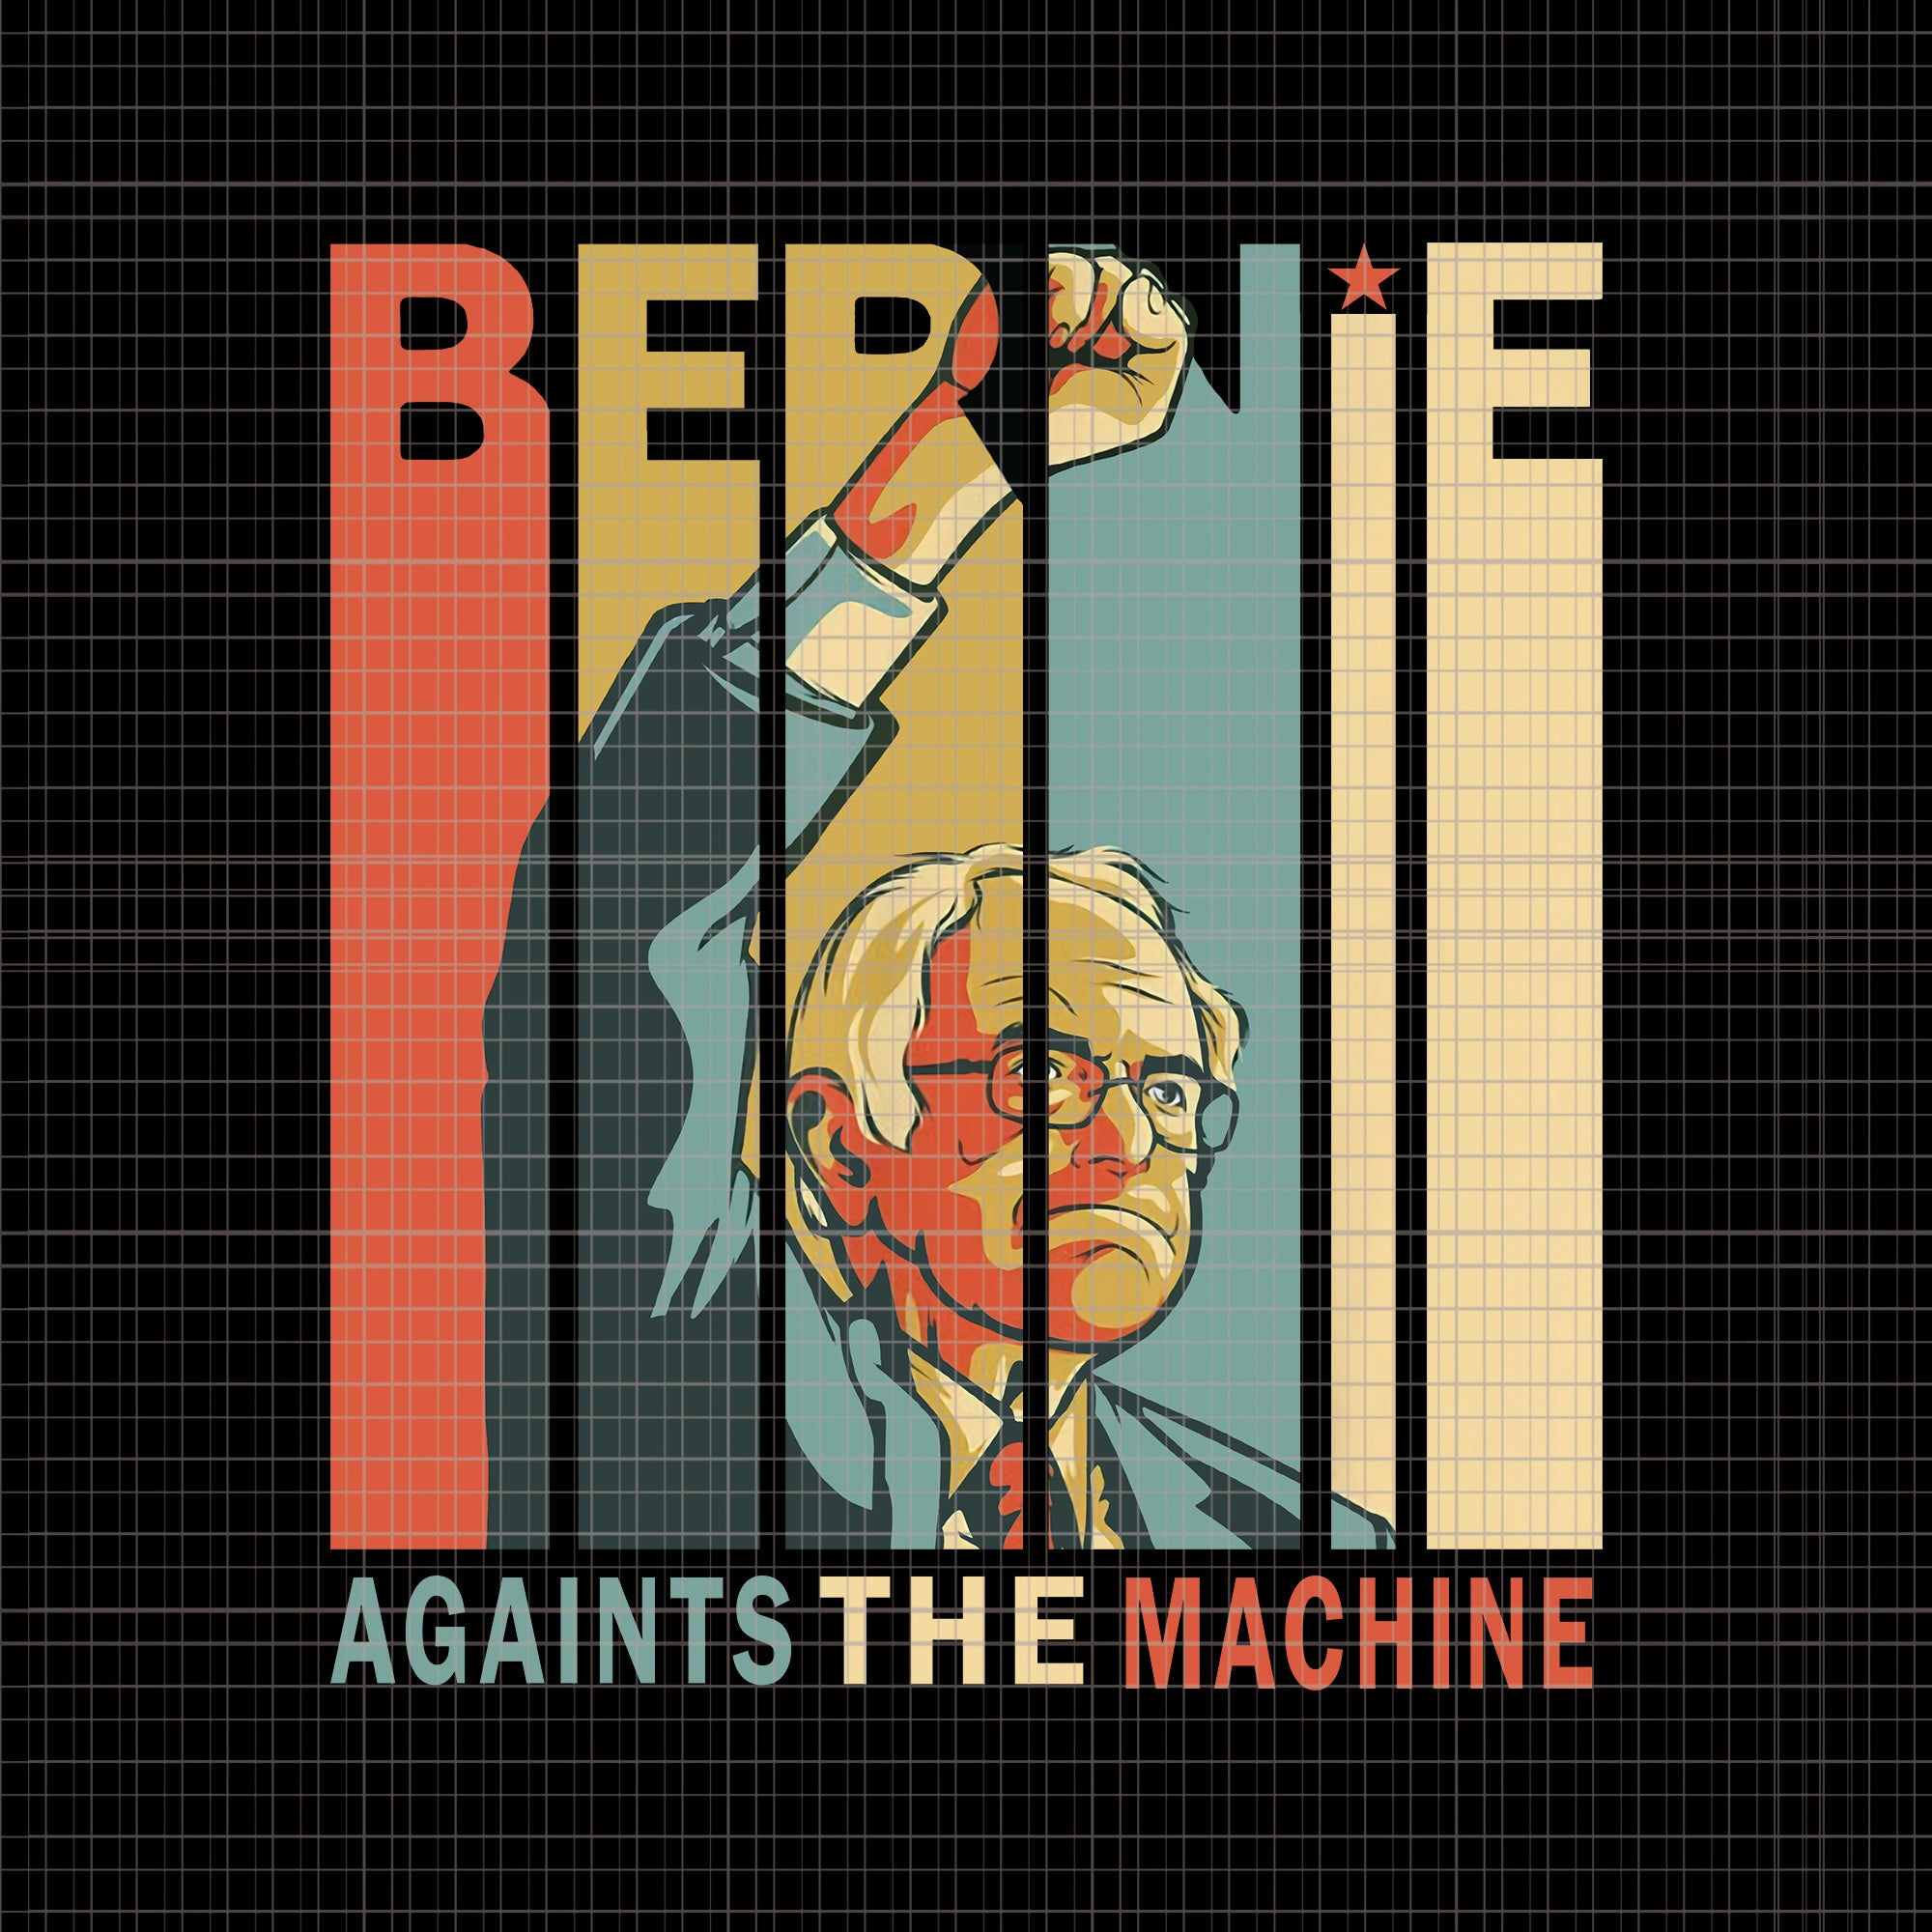 Bernie against the machine png, bernie against the machine, bernie sanders against the machine bernie 2020 vintage retro png, bernie sanders against the machine bernie 2020 vintage retro